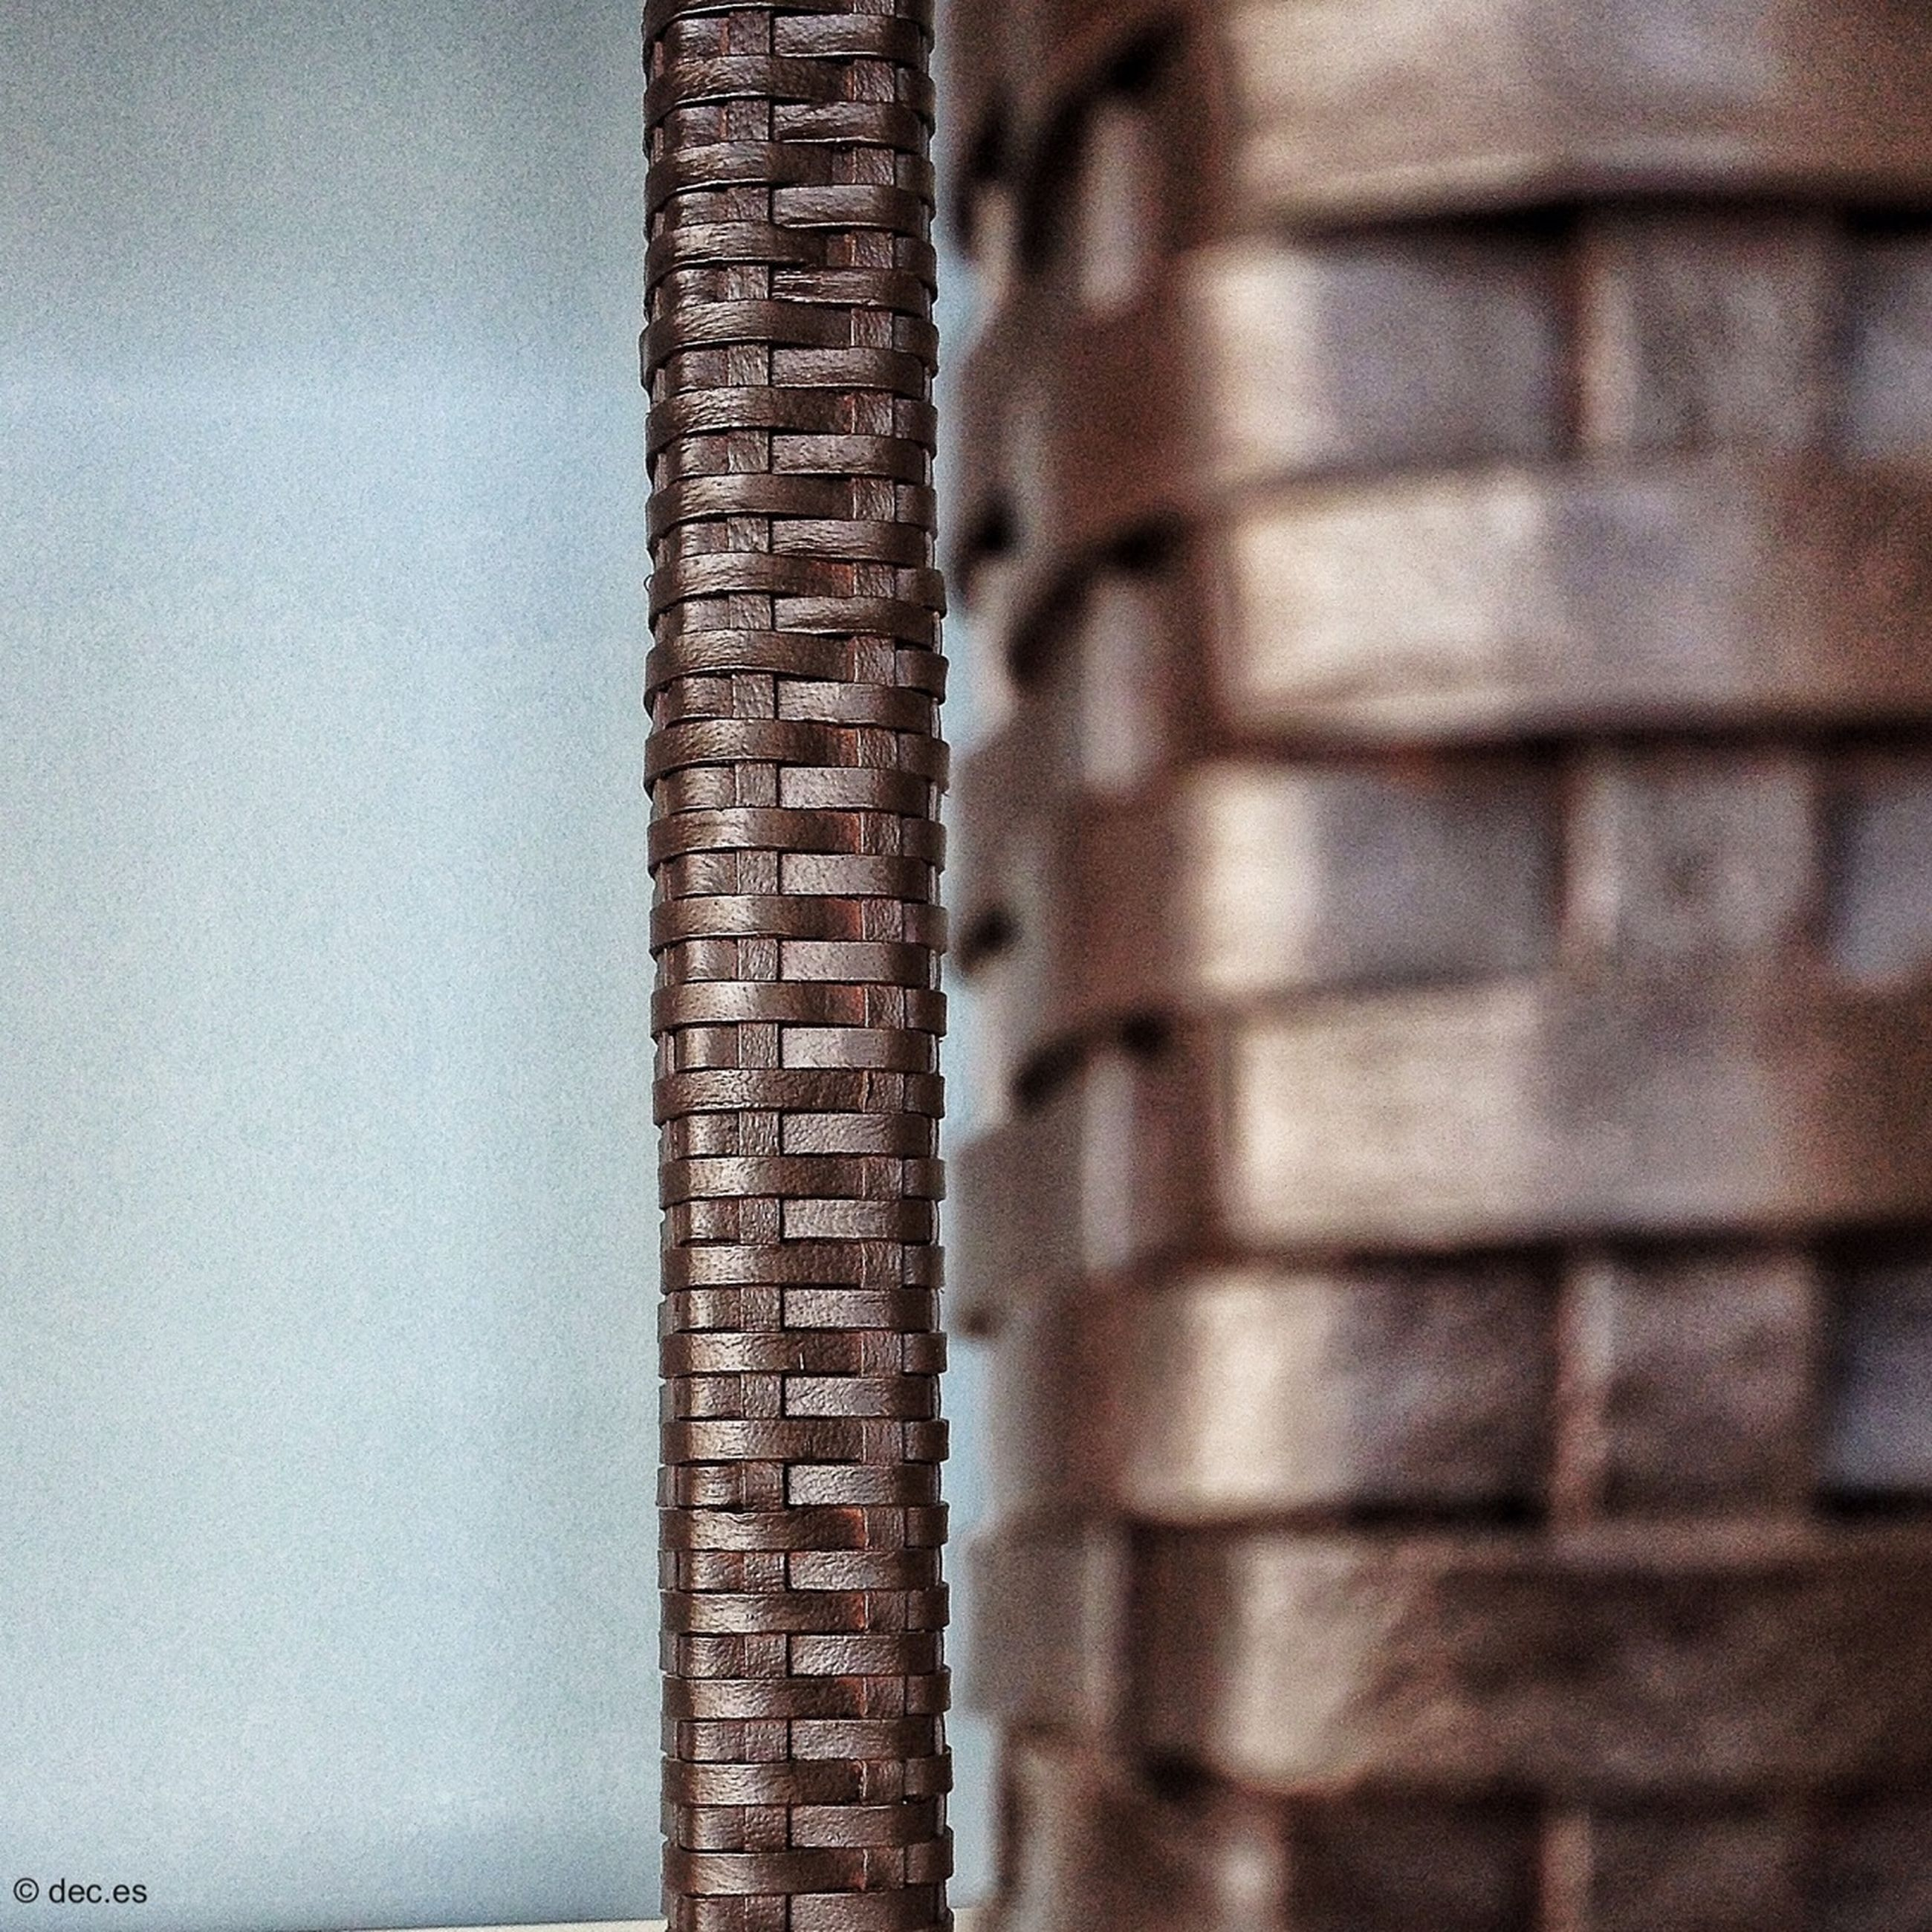 architecture, built structure, building exterior, brick wall, wall - building feature, low angle view, window, old, wall, pattern, stone wall, close-up, outdoors, day, no people, building, textured, sunlight, copy space, clear sky